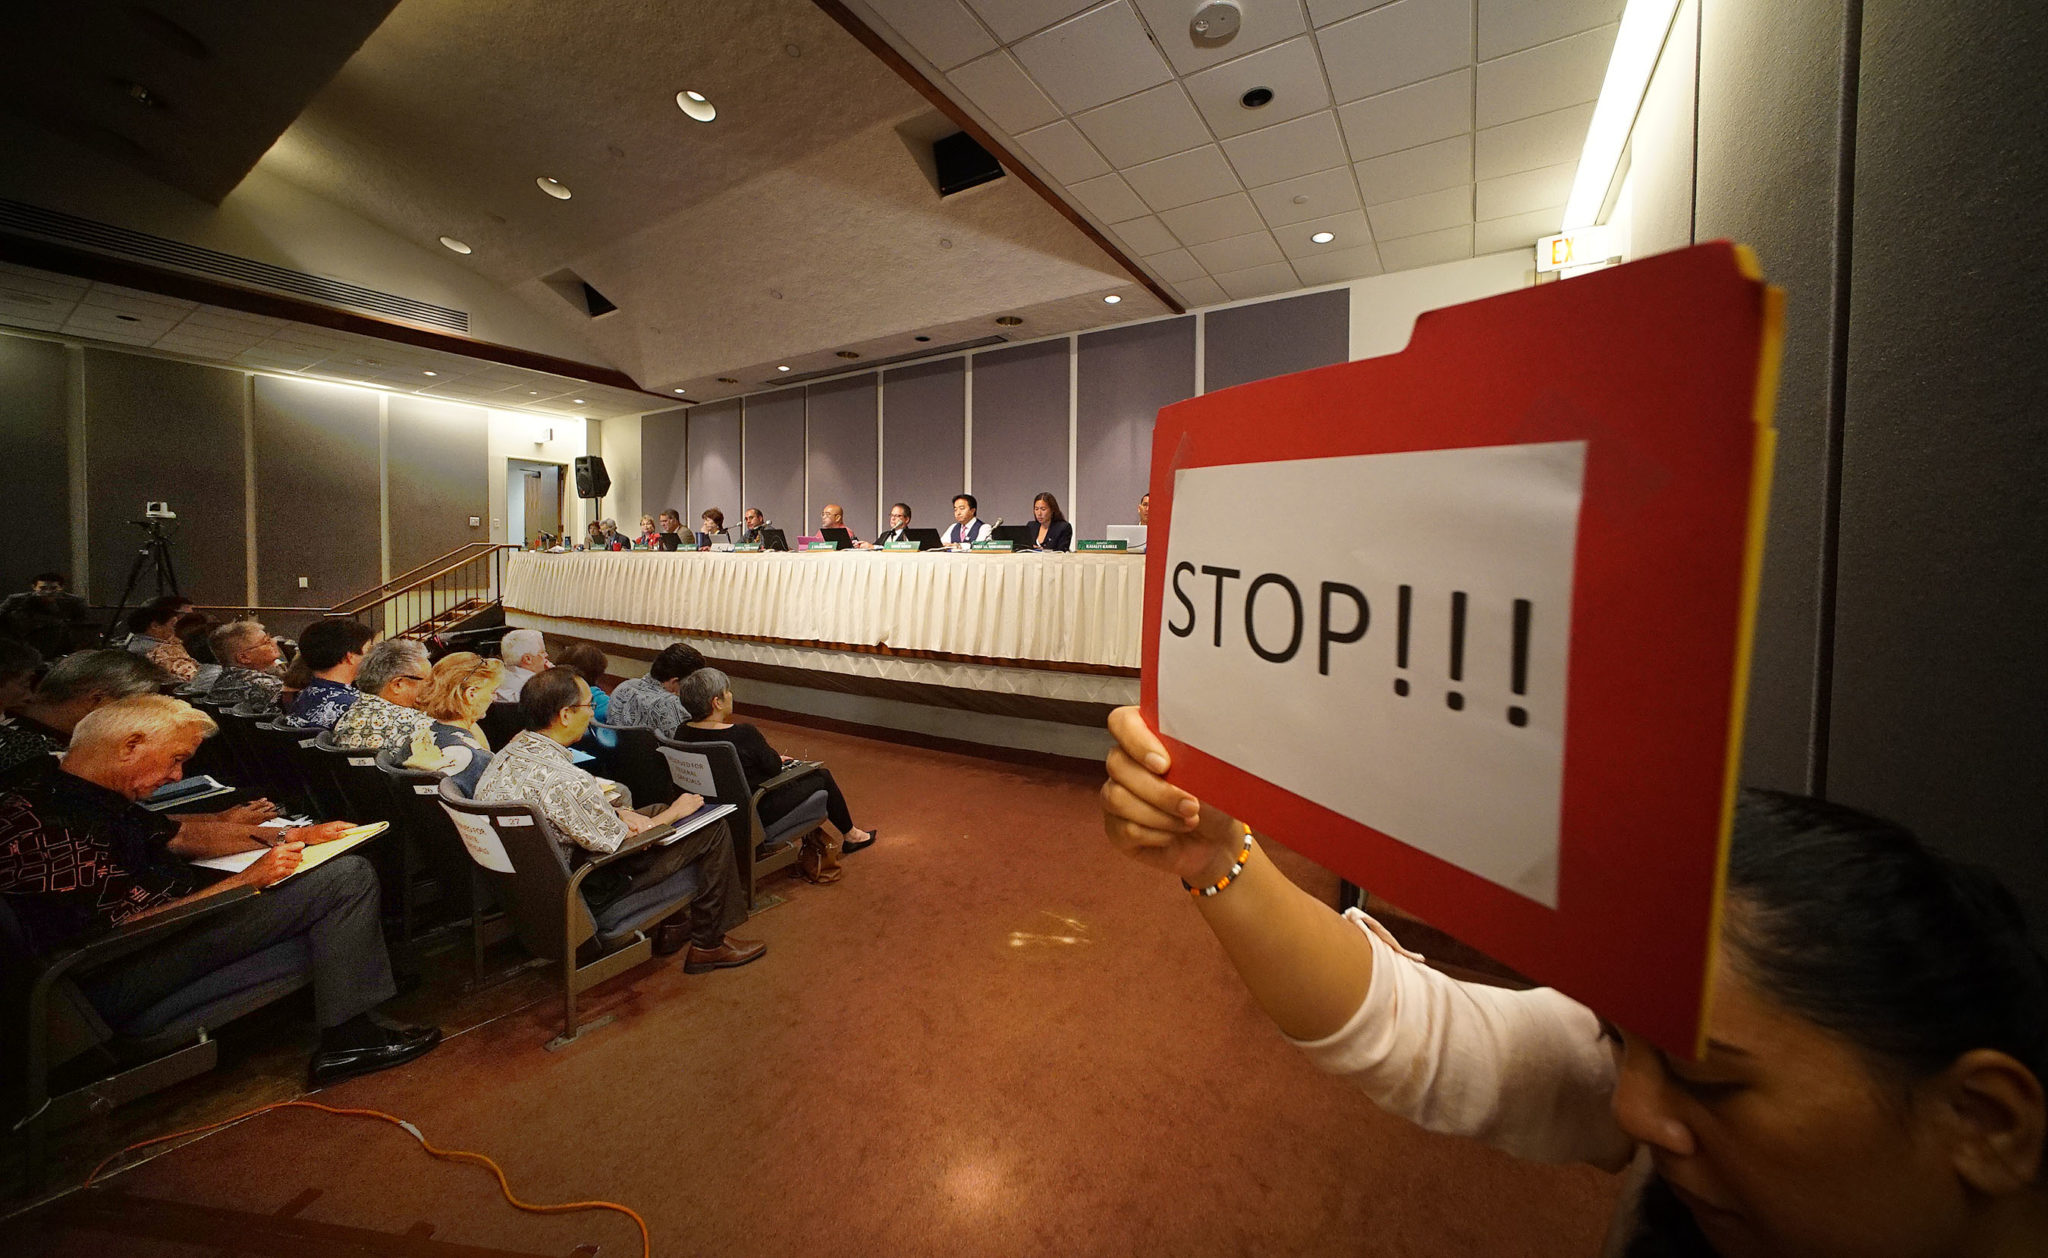 Each tesifier was given 2 minutes to testify during WAM committee hearing meeting on rail at the Capitol auditorium. Once the two minutes were up, an alarm sounded with a person holding a sign for 'stop'. Over 60-people testified followed by questions.